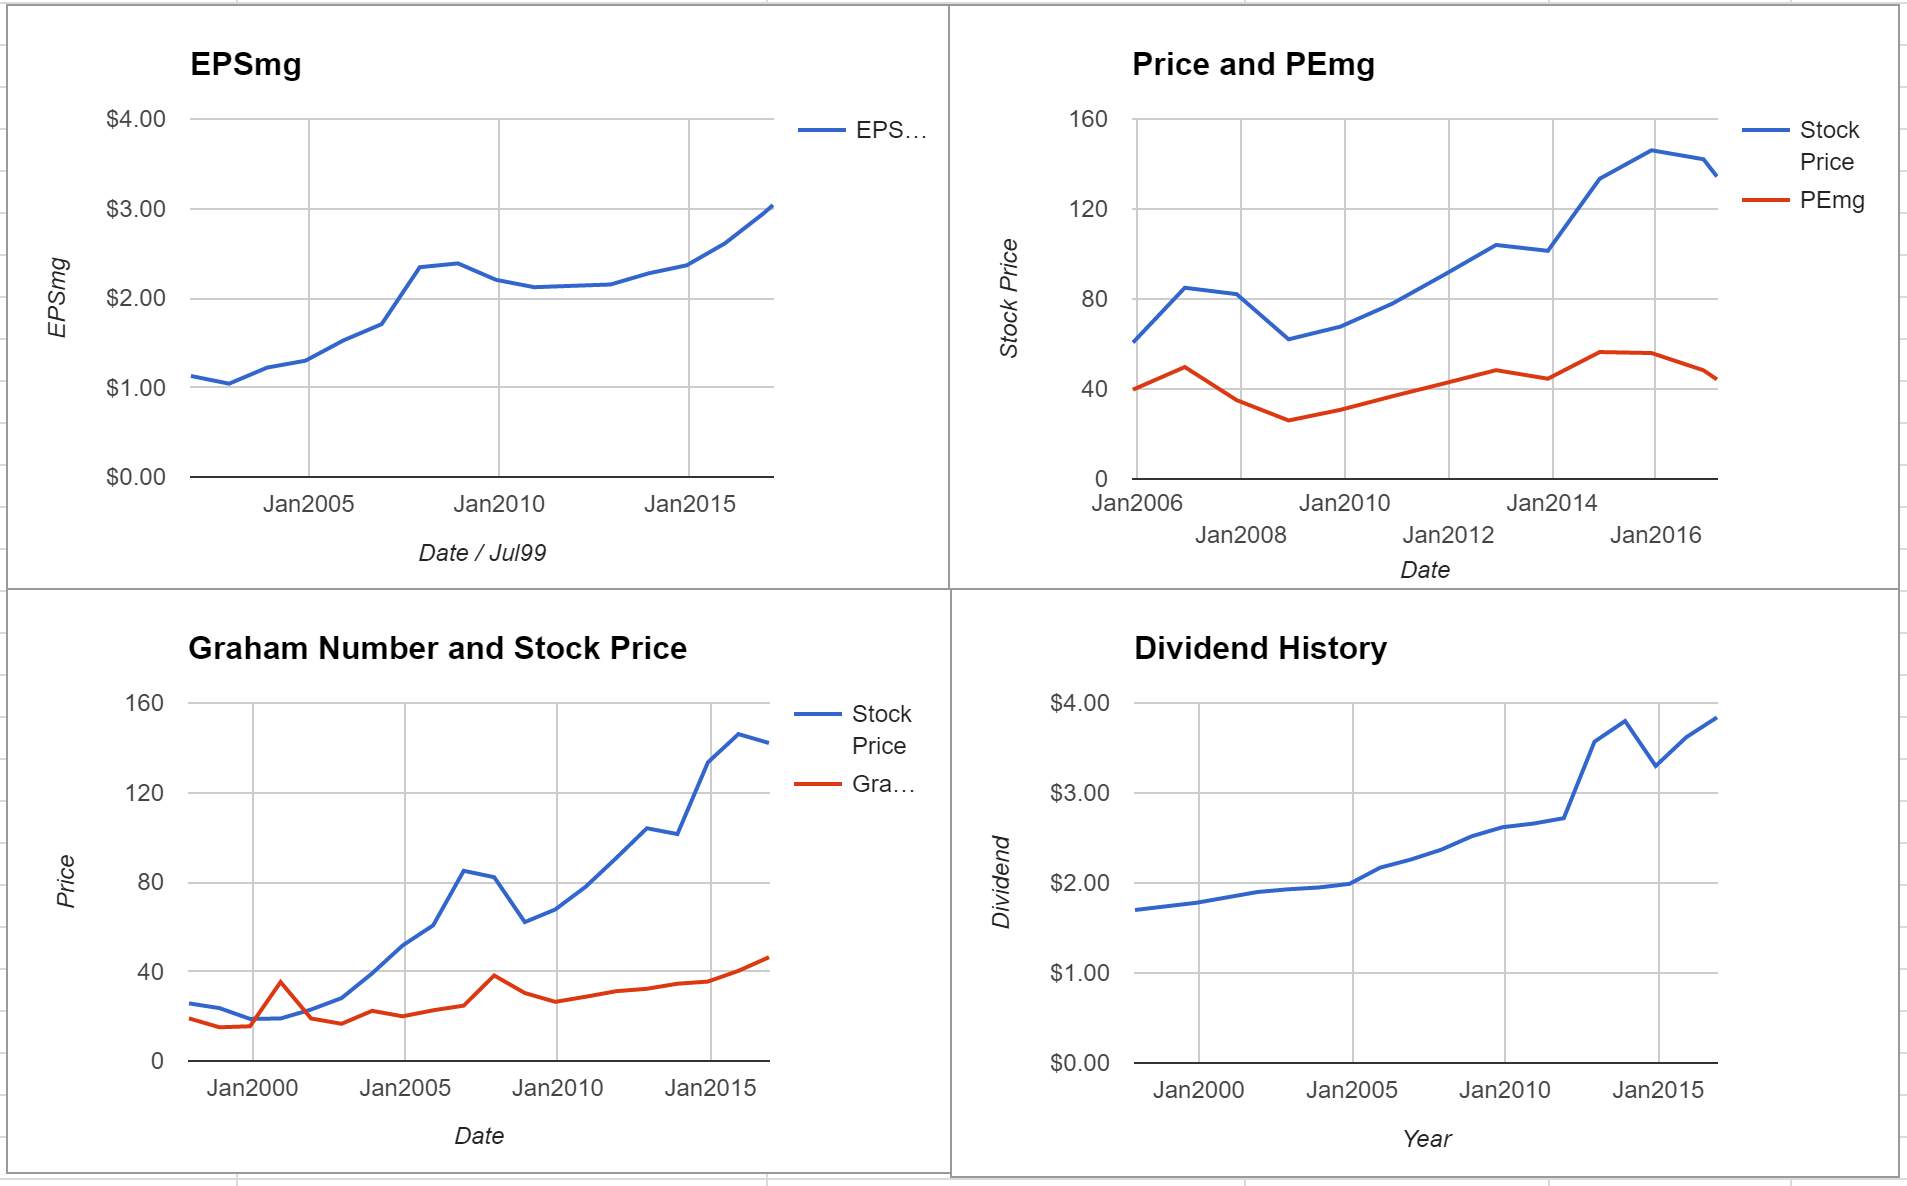 Federal Realty Investment Trust Valuation – Initial Coverage $FRT